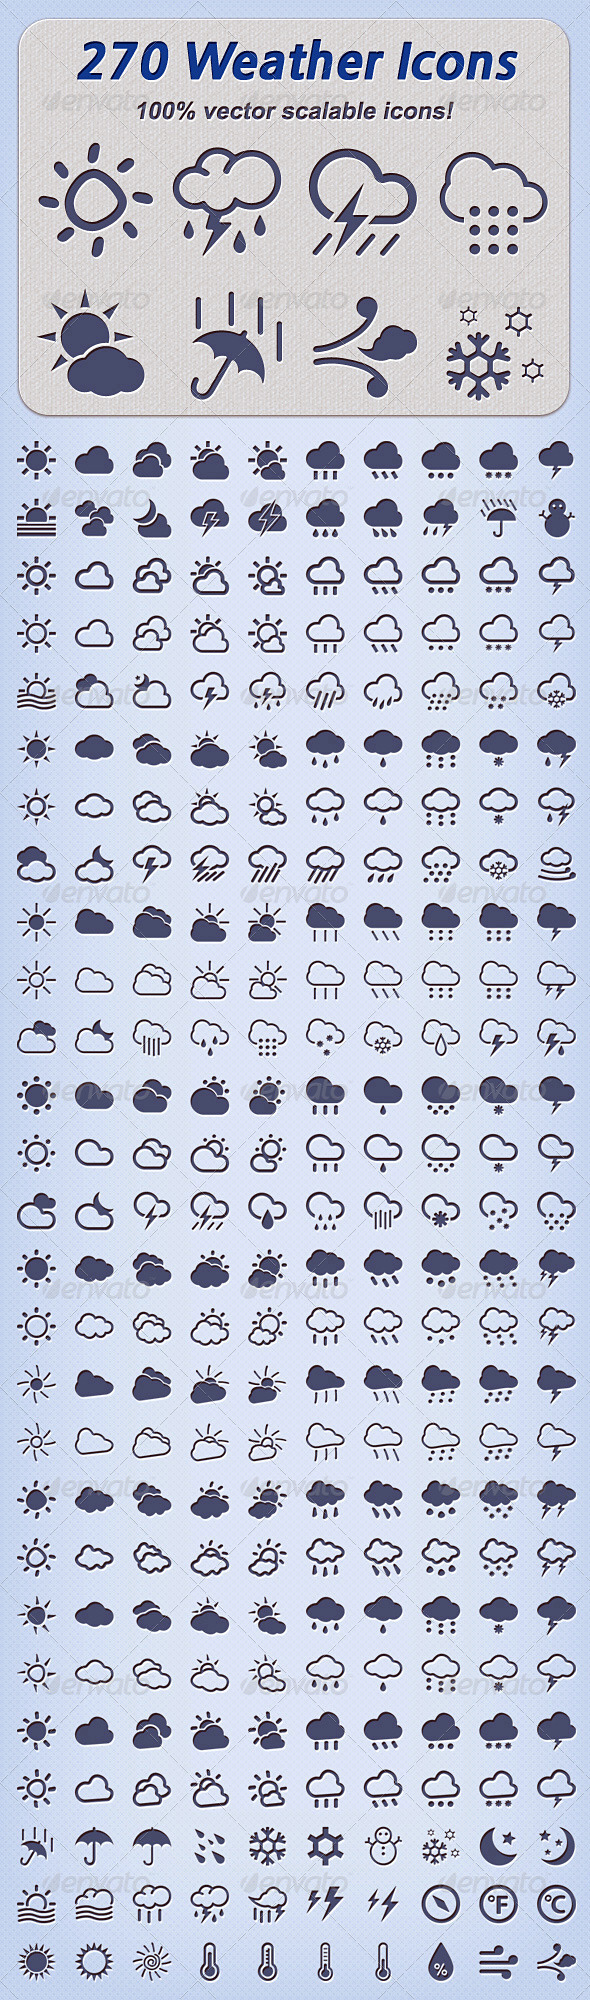 weather-icons6